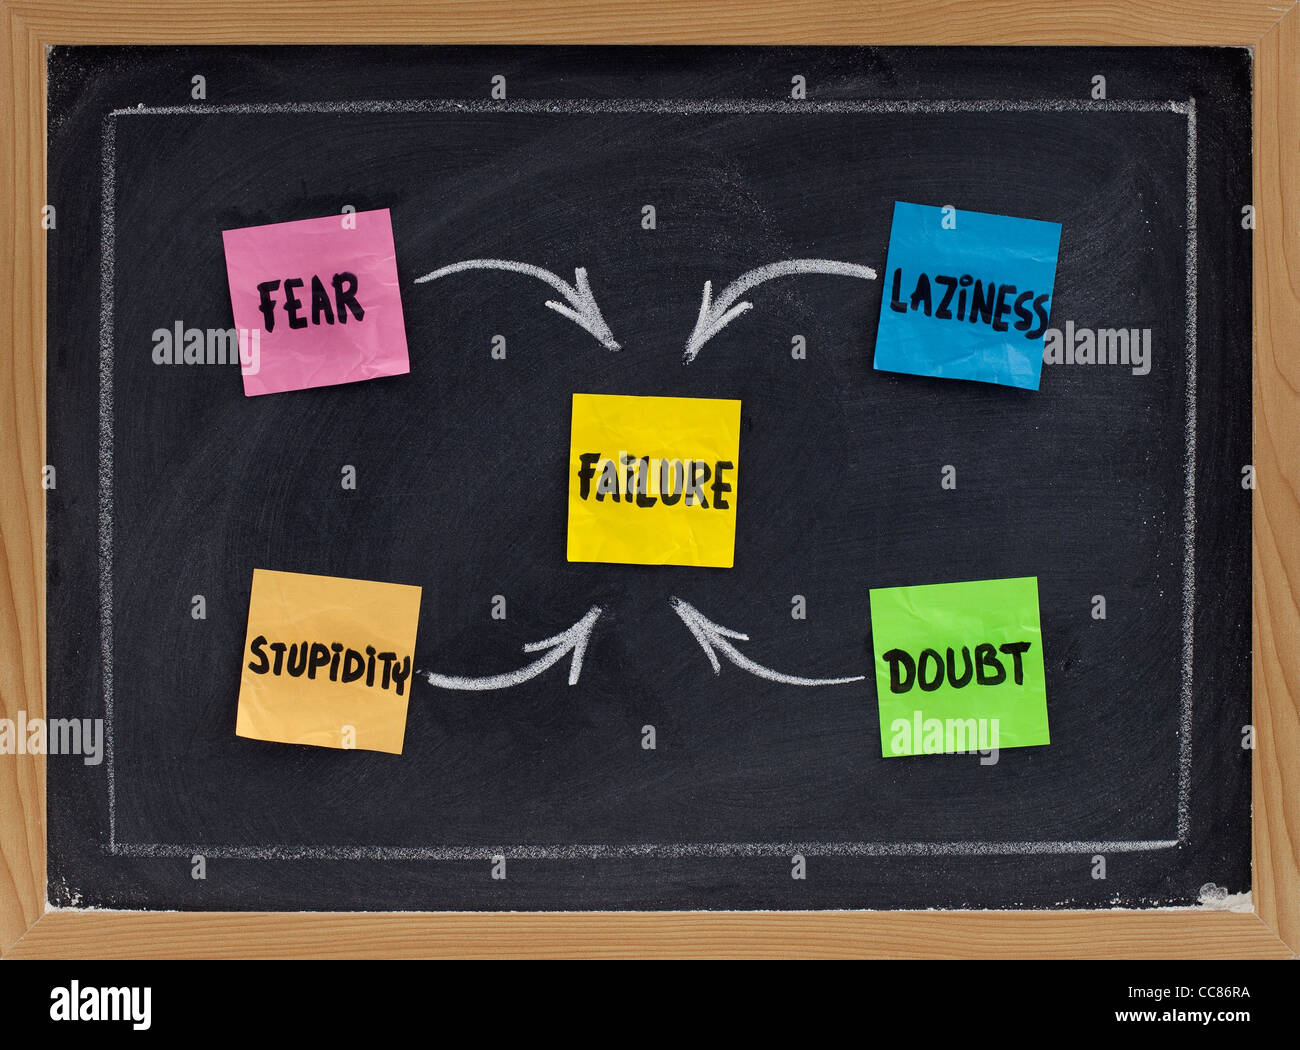 fear, doubt, laziness and stupidity - factors contributing to failure (or enemies of success) - concept on blackboard - Stock Image